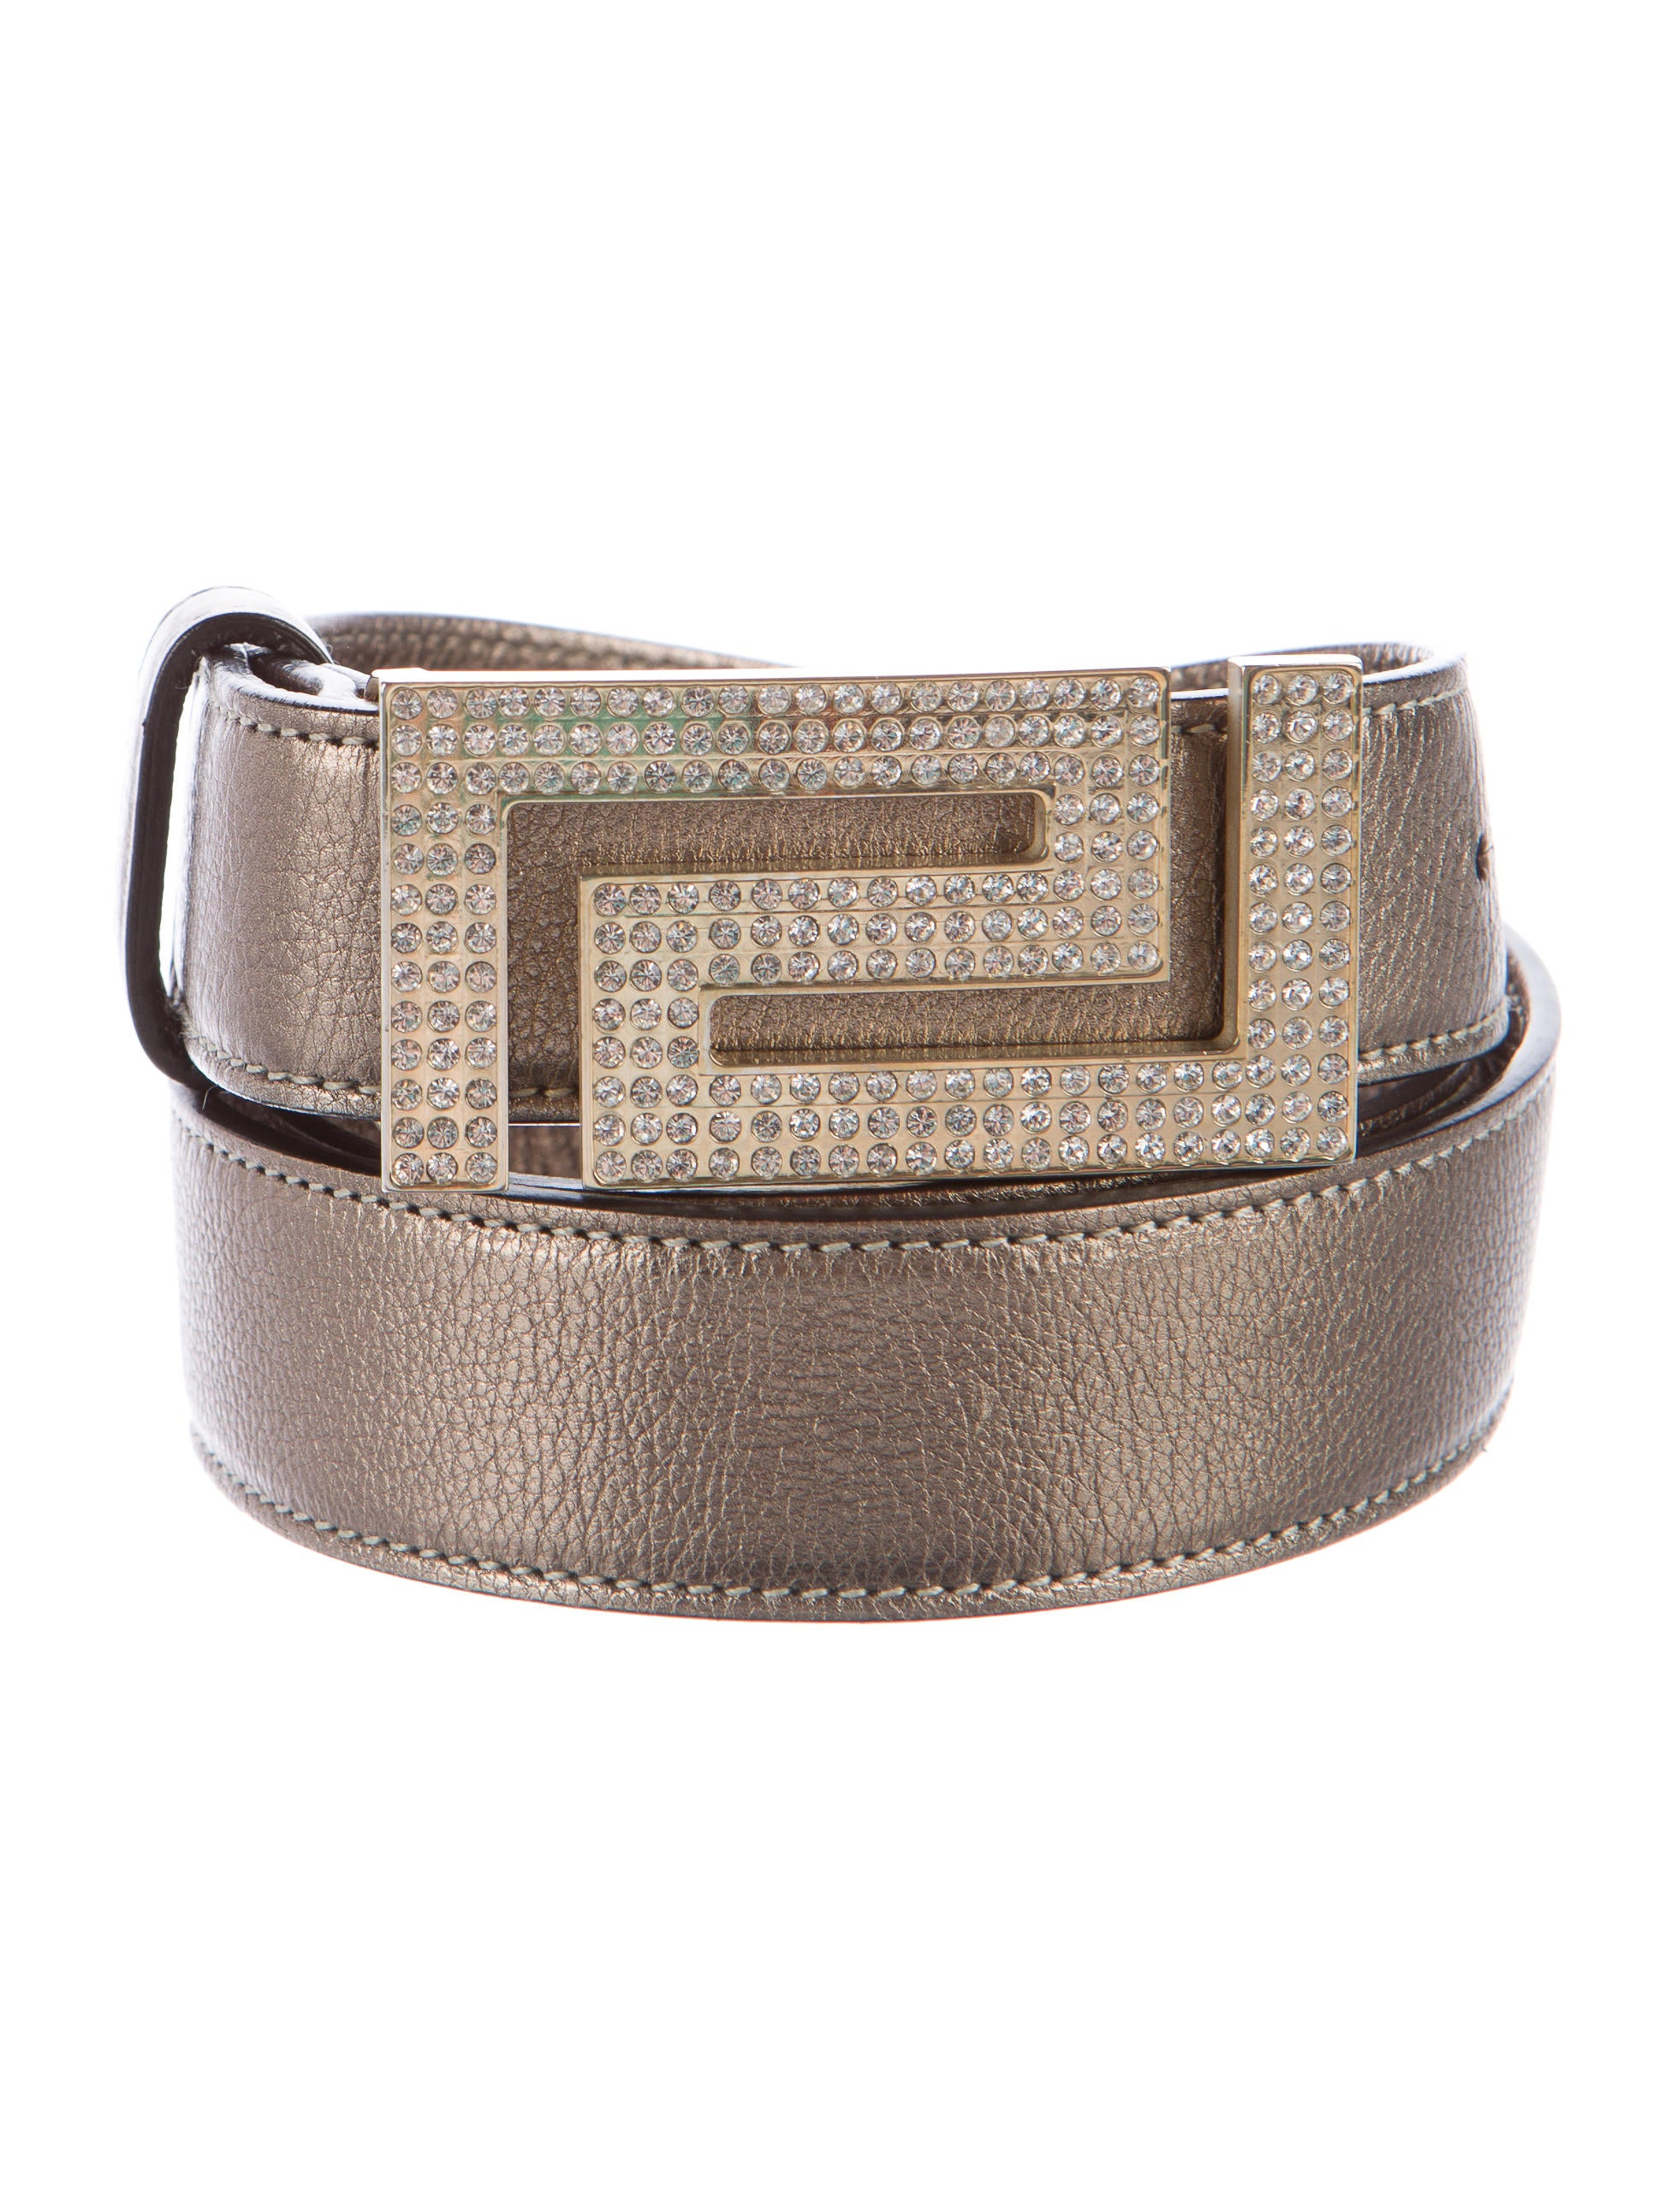 Relic Women's Embellished Brown Belt, Size: Large. Finish your look with a touch of modern charm when wearing this women's brown belt from Relic. In a smooth, pebbled synthetic leather design, this eye-catching accessory features multicolor topstitching and silvertone studs along the entire length.